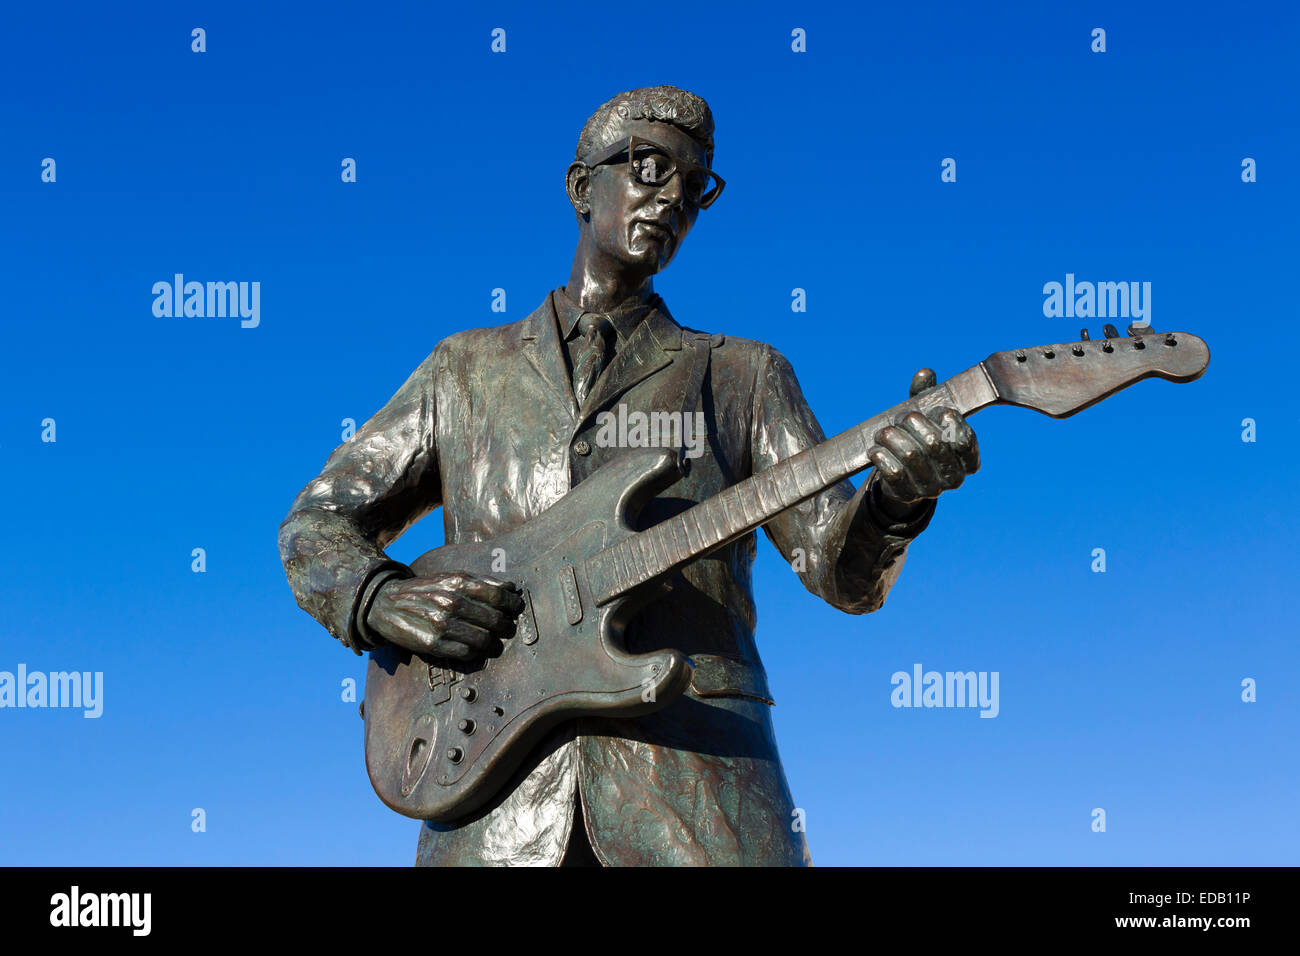 Statue von Buddy Holly auf dem Walk of Fame in Lubbock, Texas, USA Stockbild